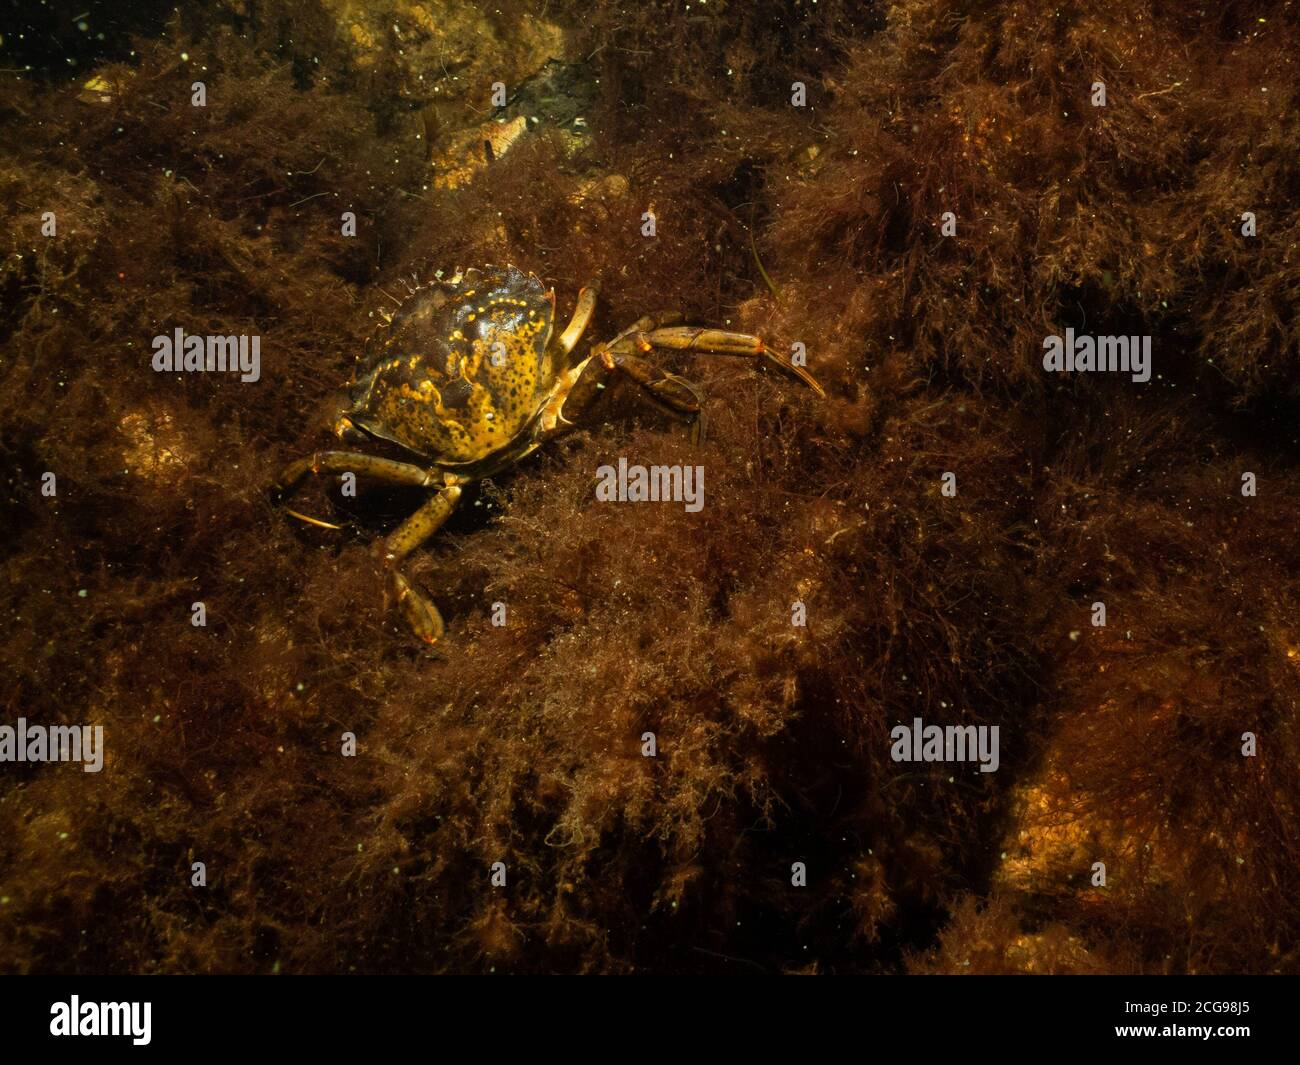 A closeup underwater picture of two crabs on a stone covered with seaweed. Picture from Oresund, Malmo in southern Sweden. Stock Photo